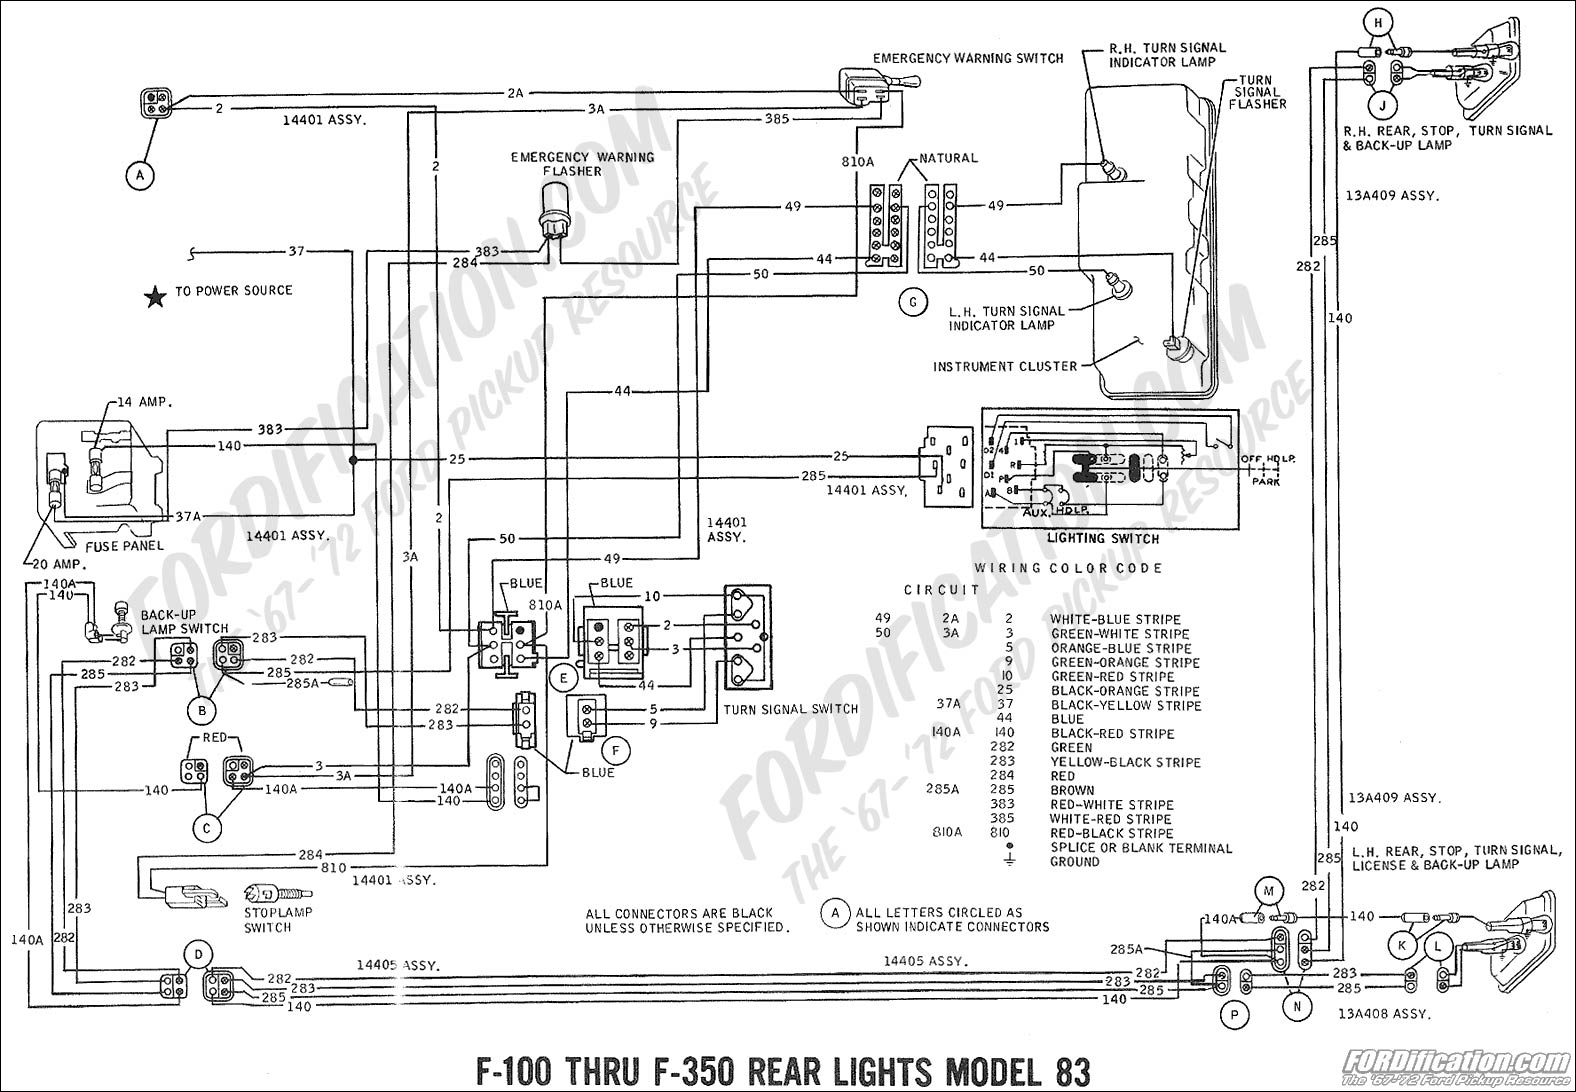 fordmanuals  u2013 1971 colorized mustang wiring diagrams 1976 280Z Wiring Diagram wiring 69rearlights mdl83 2